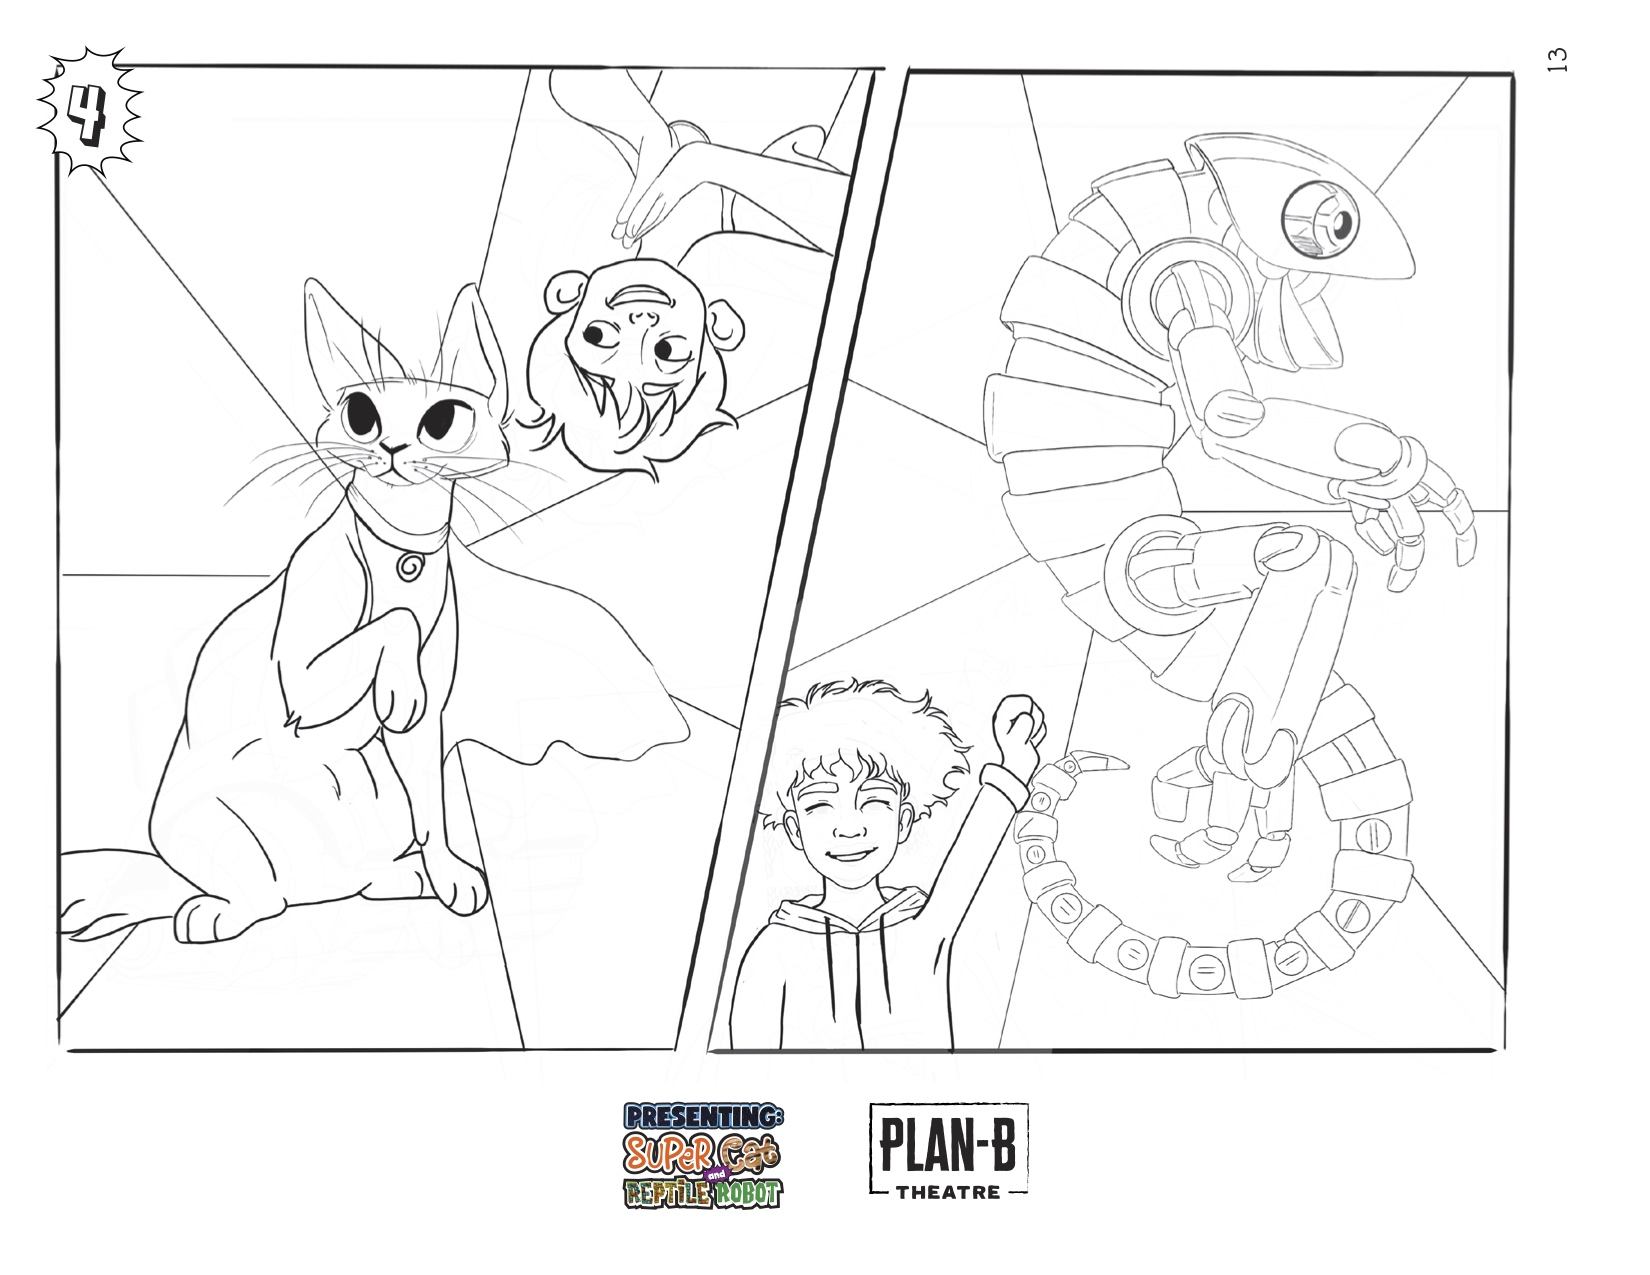 PRESENTING: SUPER CAT & REPTILE ROBOT coloring page with all male cast.